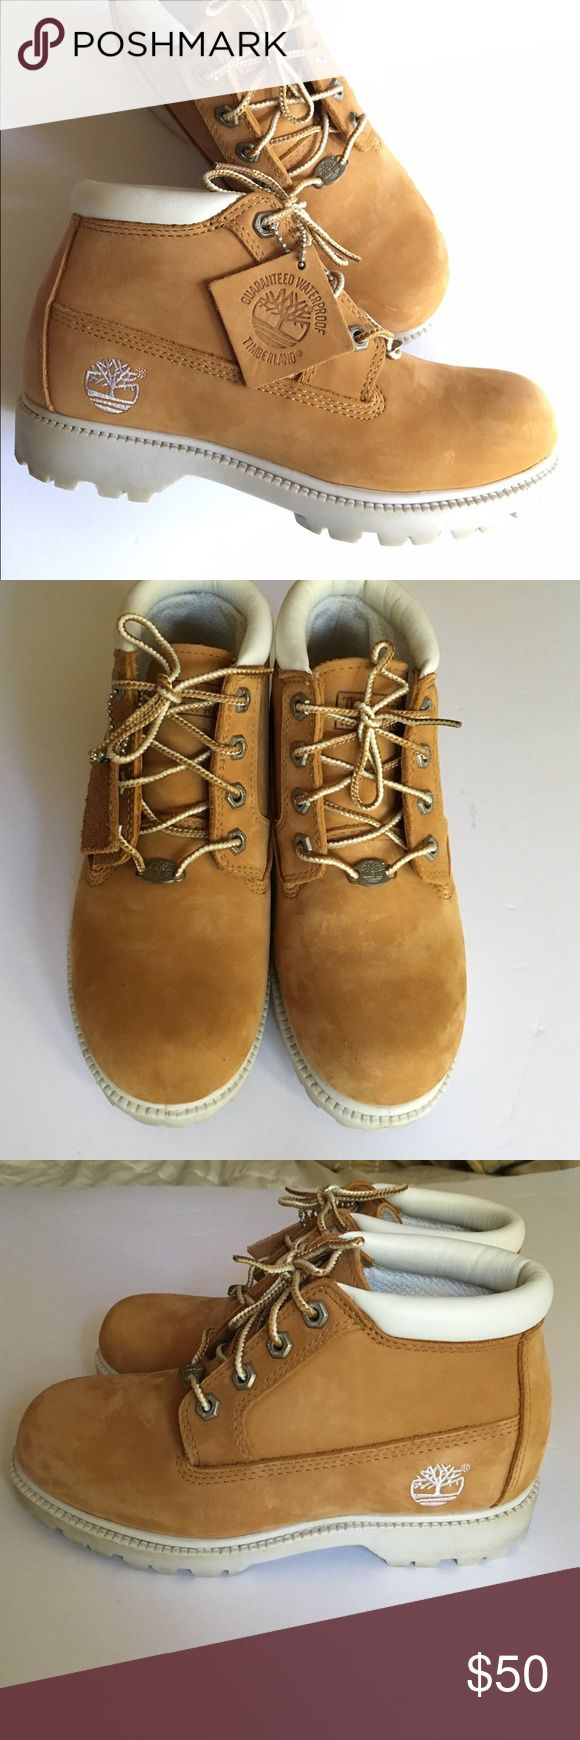 Timberland Nellie Waterproof Chukka Condition: Excellent Used Condition  Cosmetic Blemishes: Small smudge mark on back of left heel; shown in photo Note: Will fit girls in addition to women Questions: Ask away! ❤️ Always shipped the same or next day ❤️Pet Free/Smoke Free Environment ❤️Bundles of 2+ receive 10% discount! Timberland Shoes Lace Up Boots